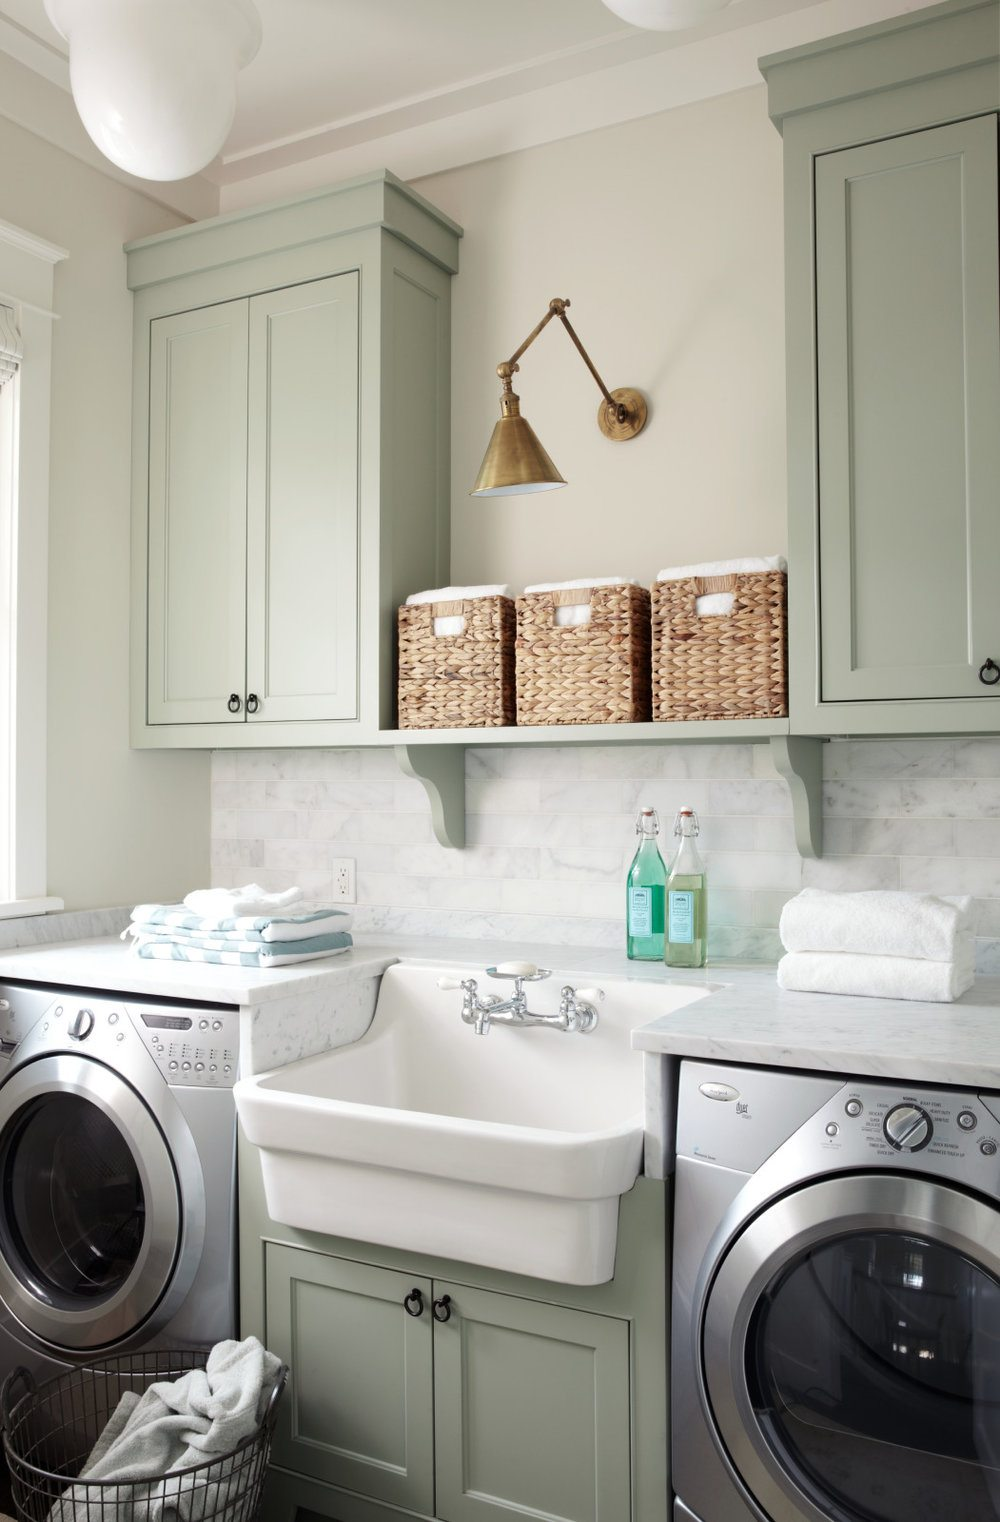 50 Beautiful and Functional Laundry Room Ideas - Homelovr